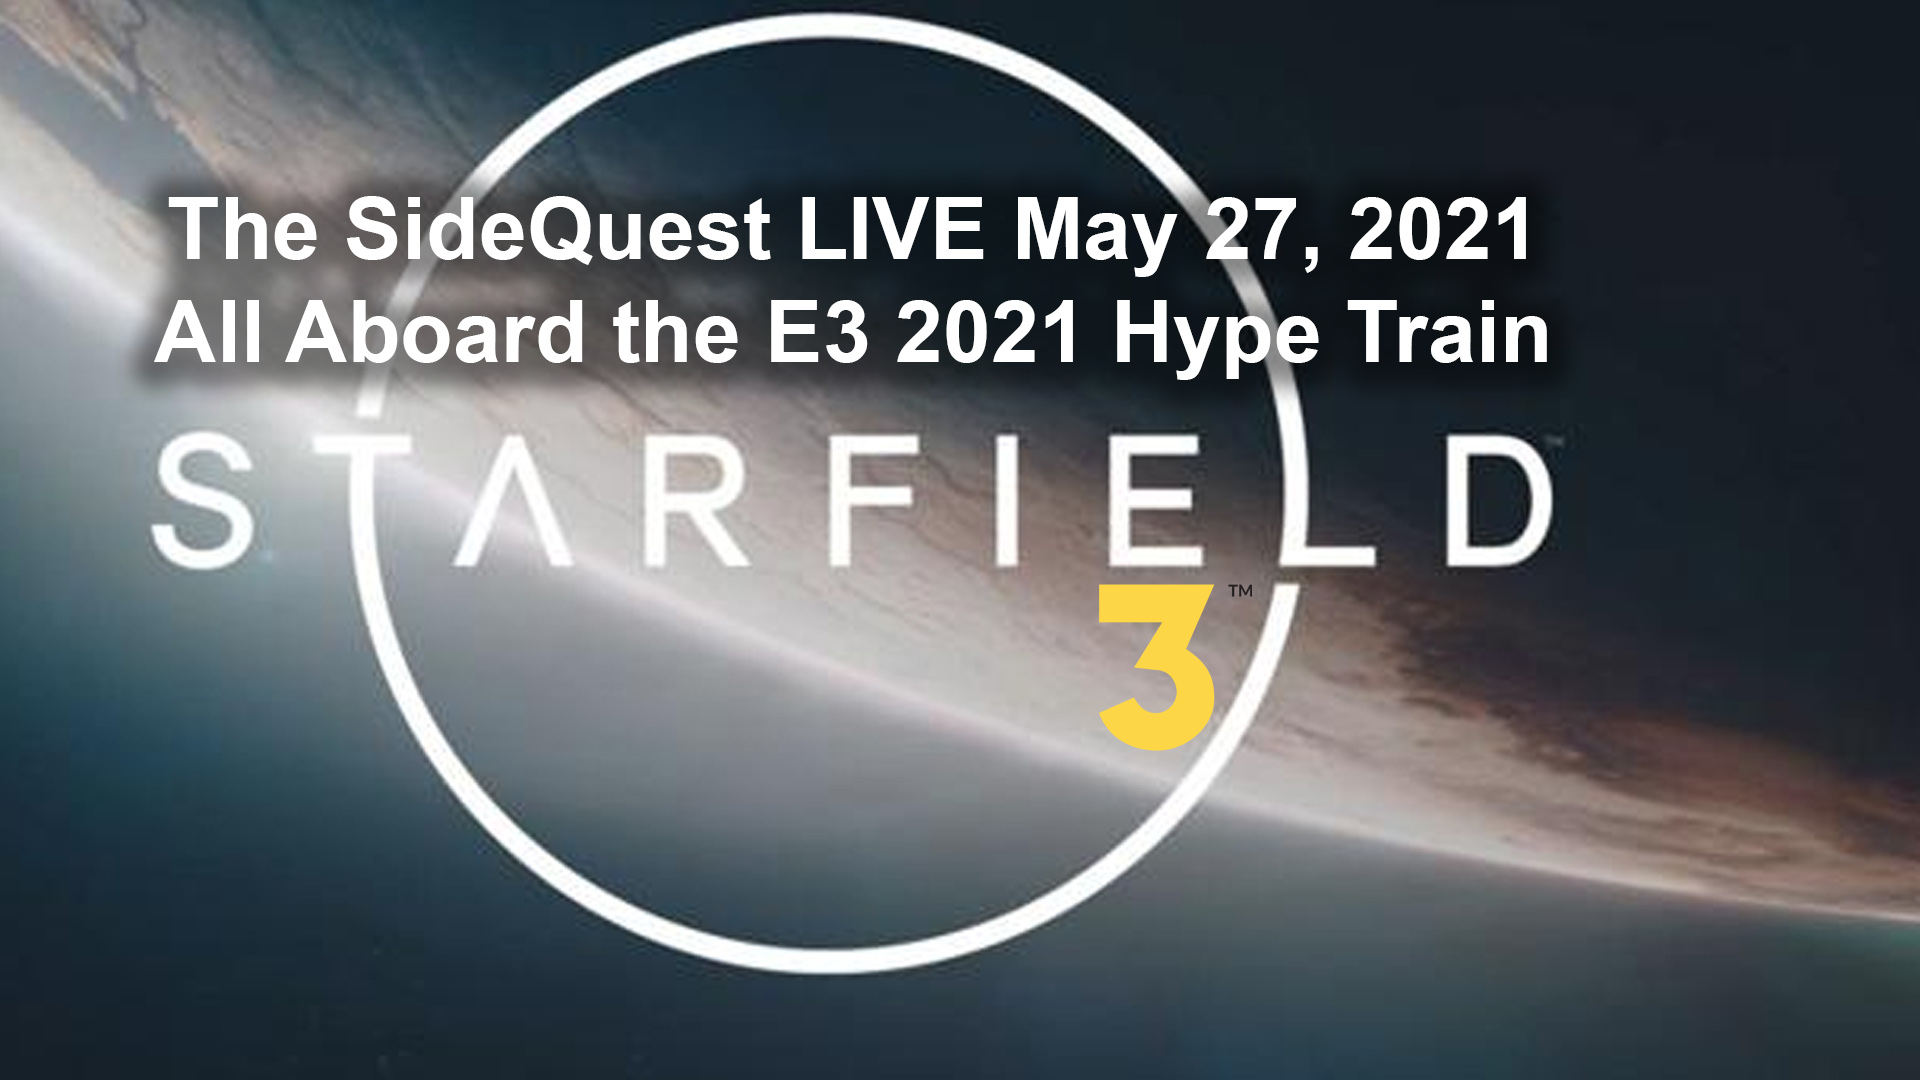 The SideQuest LIVE May 27, 2021: All Aboard the E3 2021 Hype Train